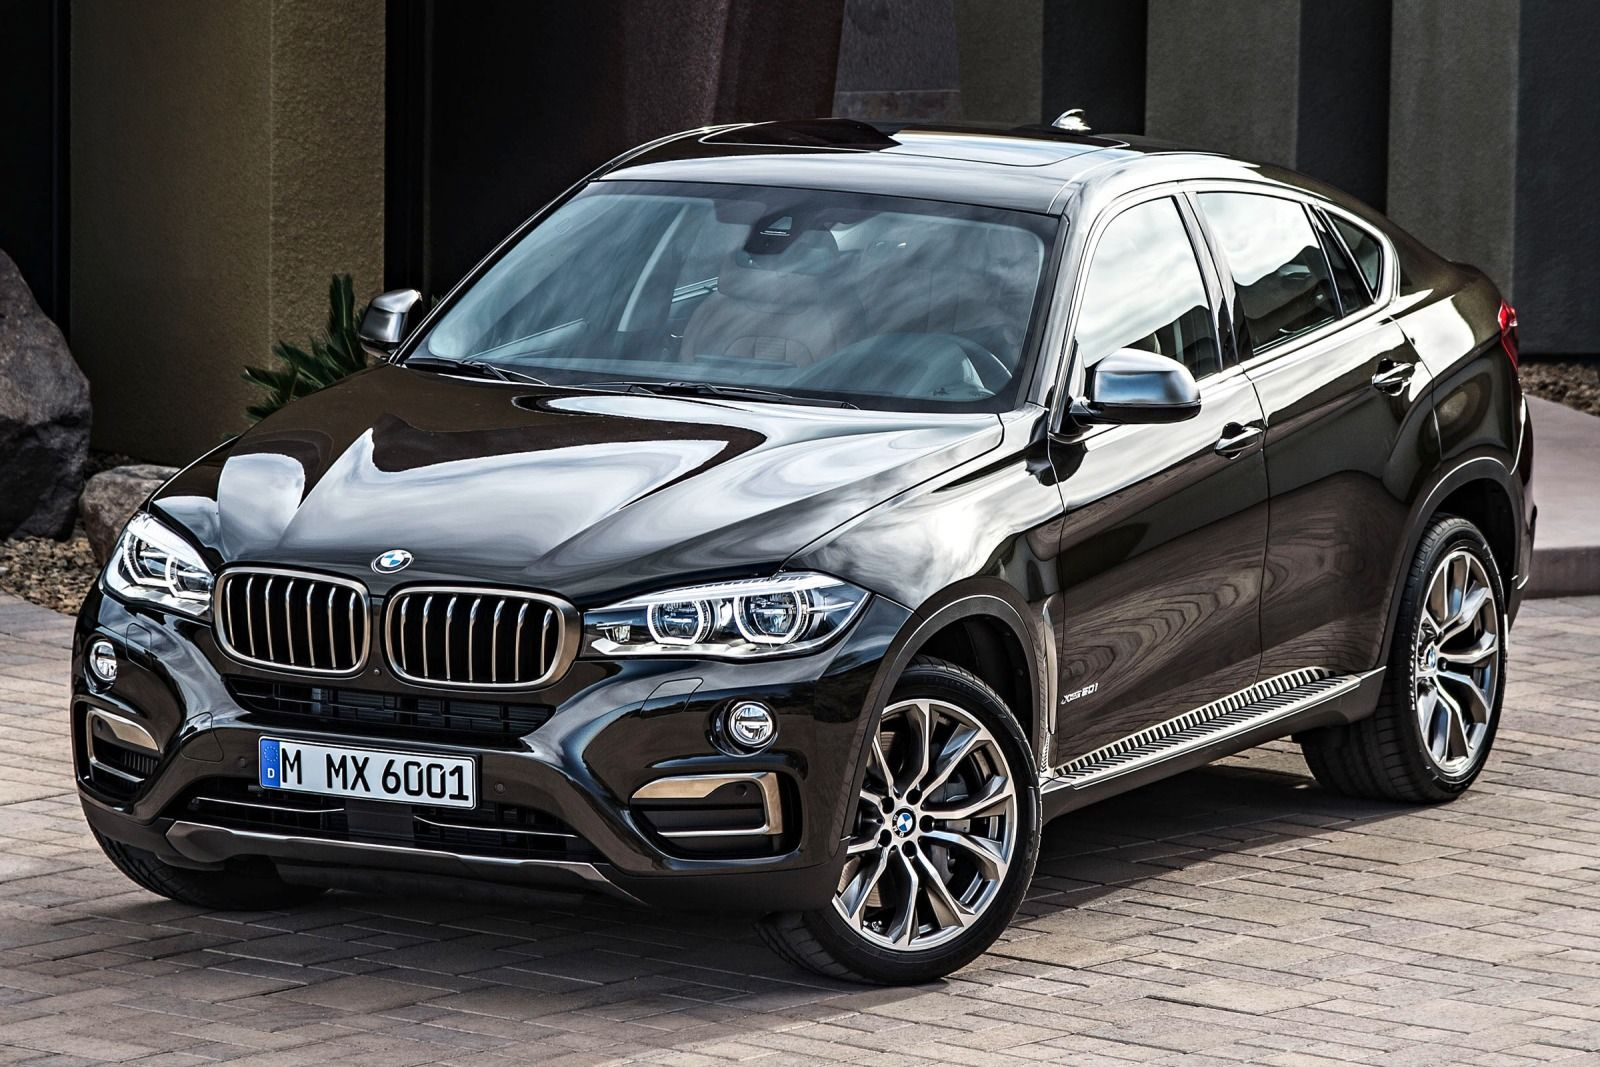 Bmw Suv 2015 24 Free Car Hd Wallpaper